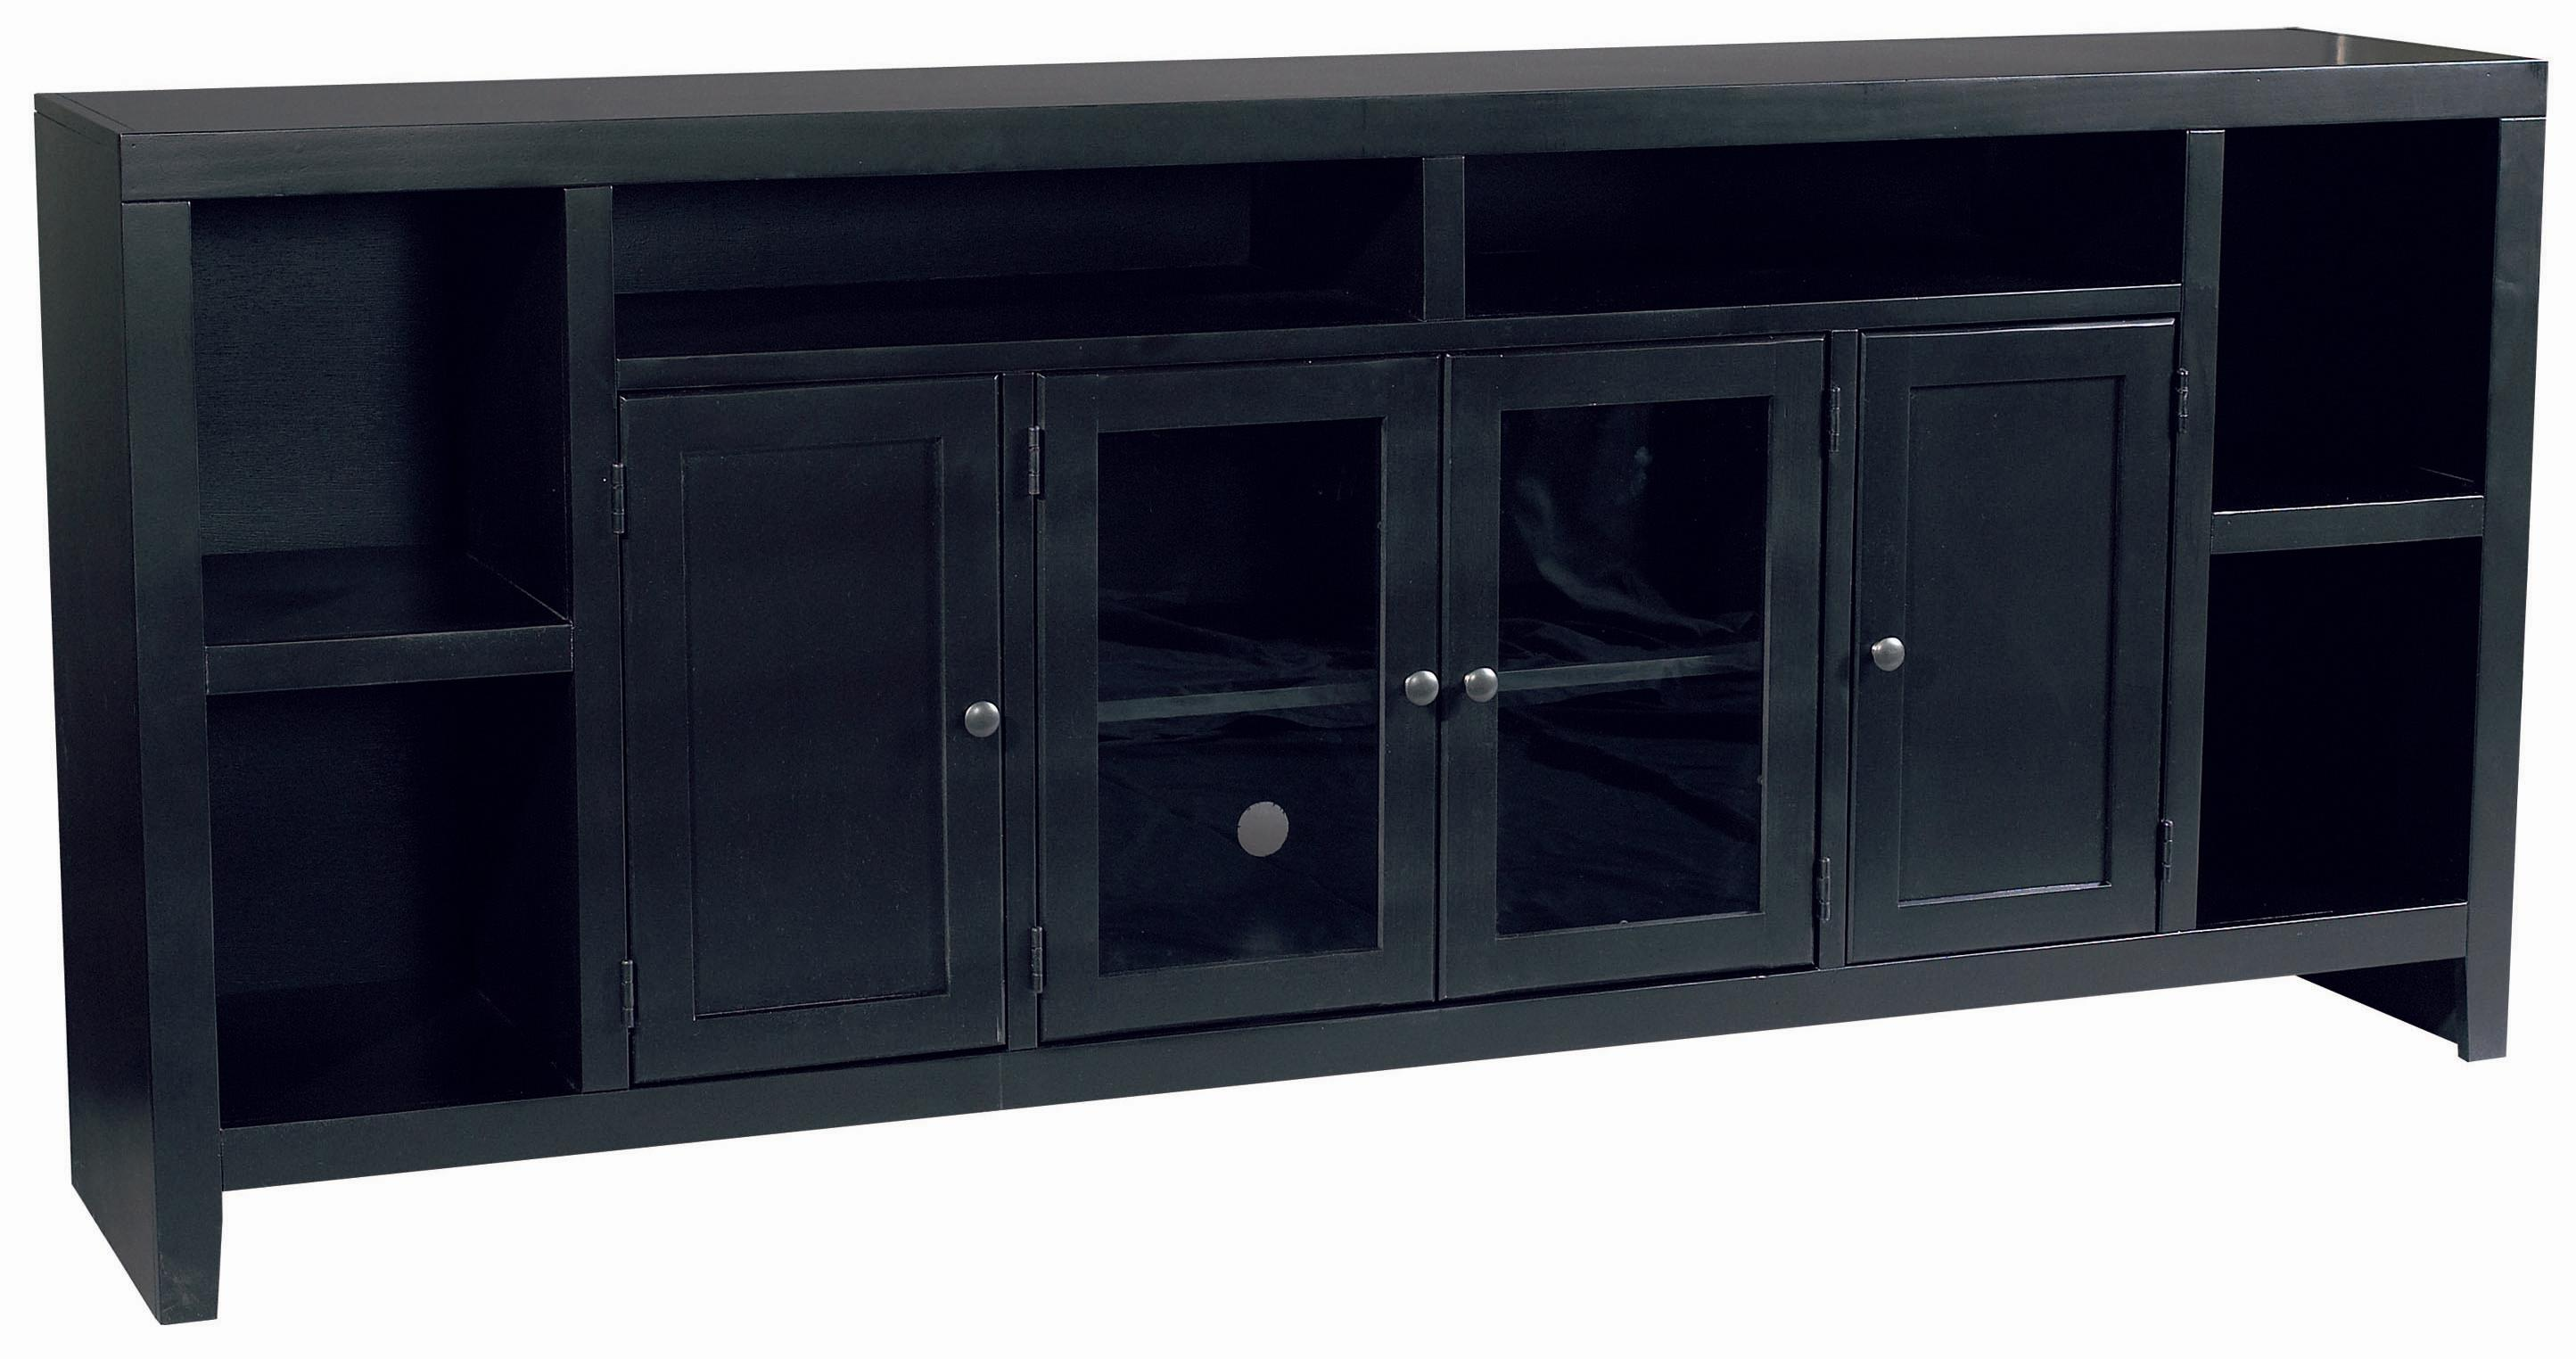 Aspenhome Essentials Lifestyle 84 Inch Console - Item Number: CL1036-BLK